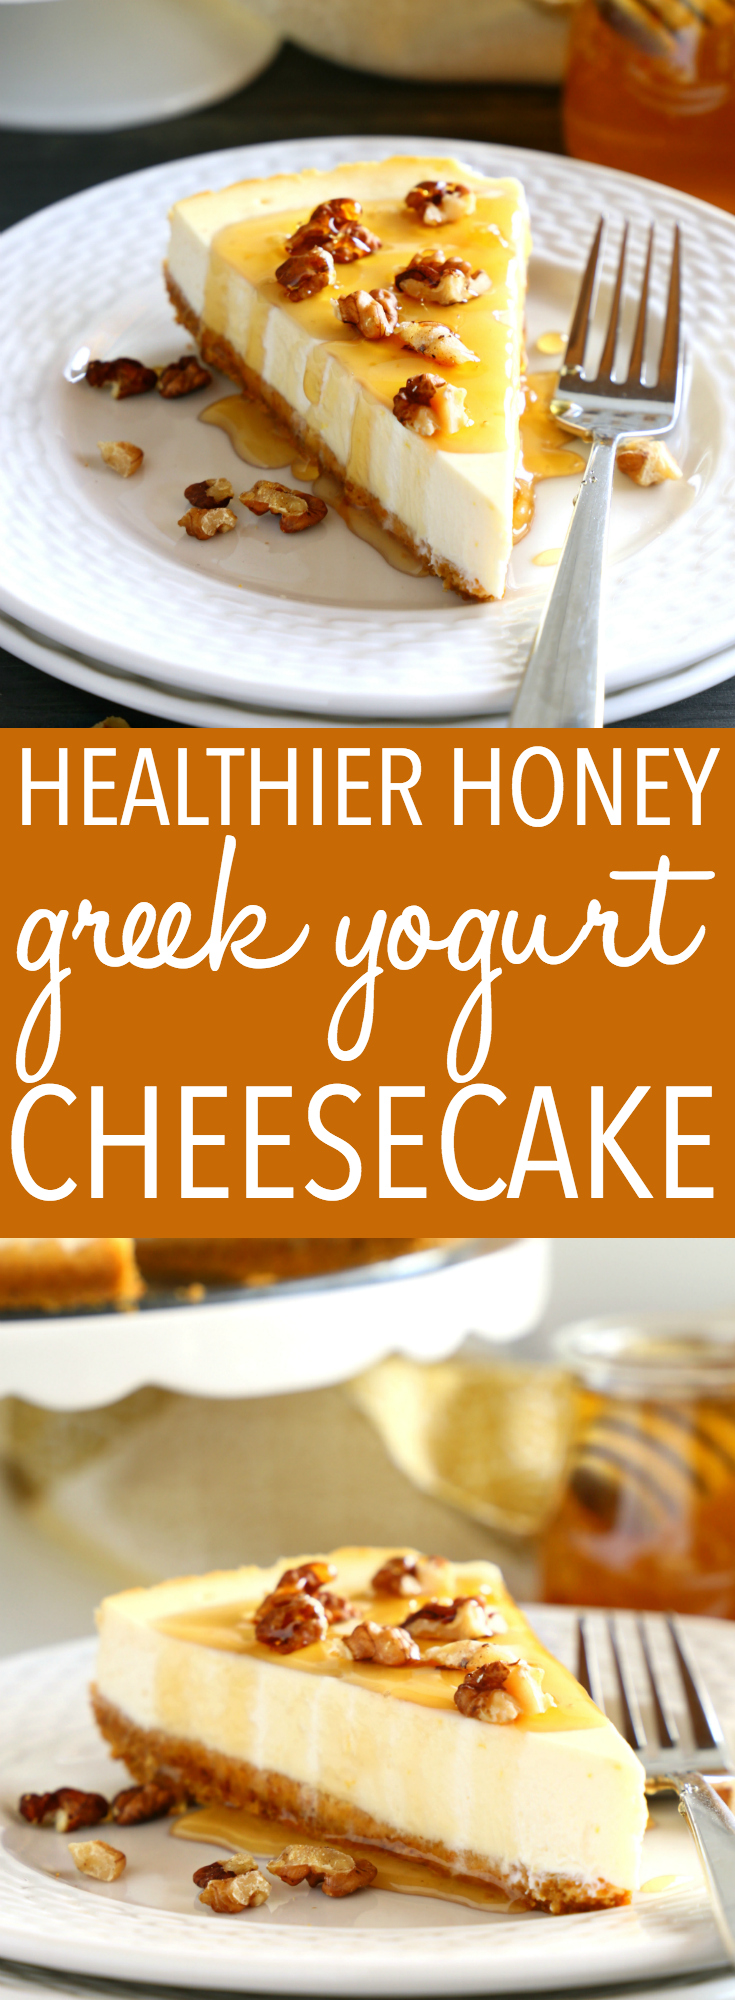 This Healthy Honey Greek Yogurt Cheesecake is the BEST healthy dessert for summer! It's made with low fat ingredients and no refined sugar, and it's under 200 calories per slice! Recipe from thebusybaker.ca! #healthycheesecake #honeyyogurtcheesecake #greekyogurtcheesecake via @busybakerblog